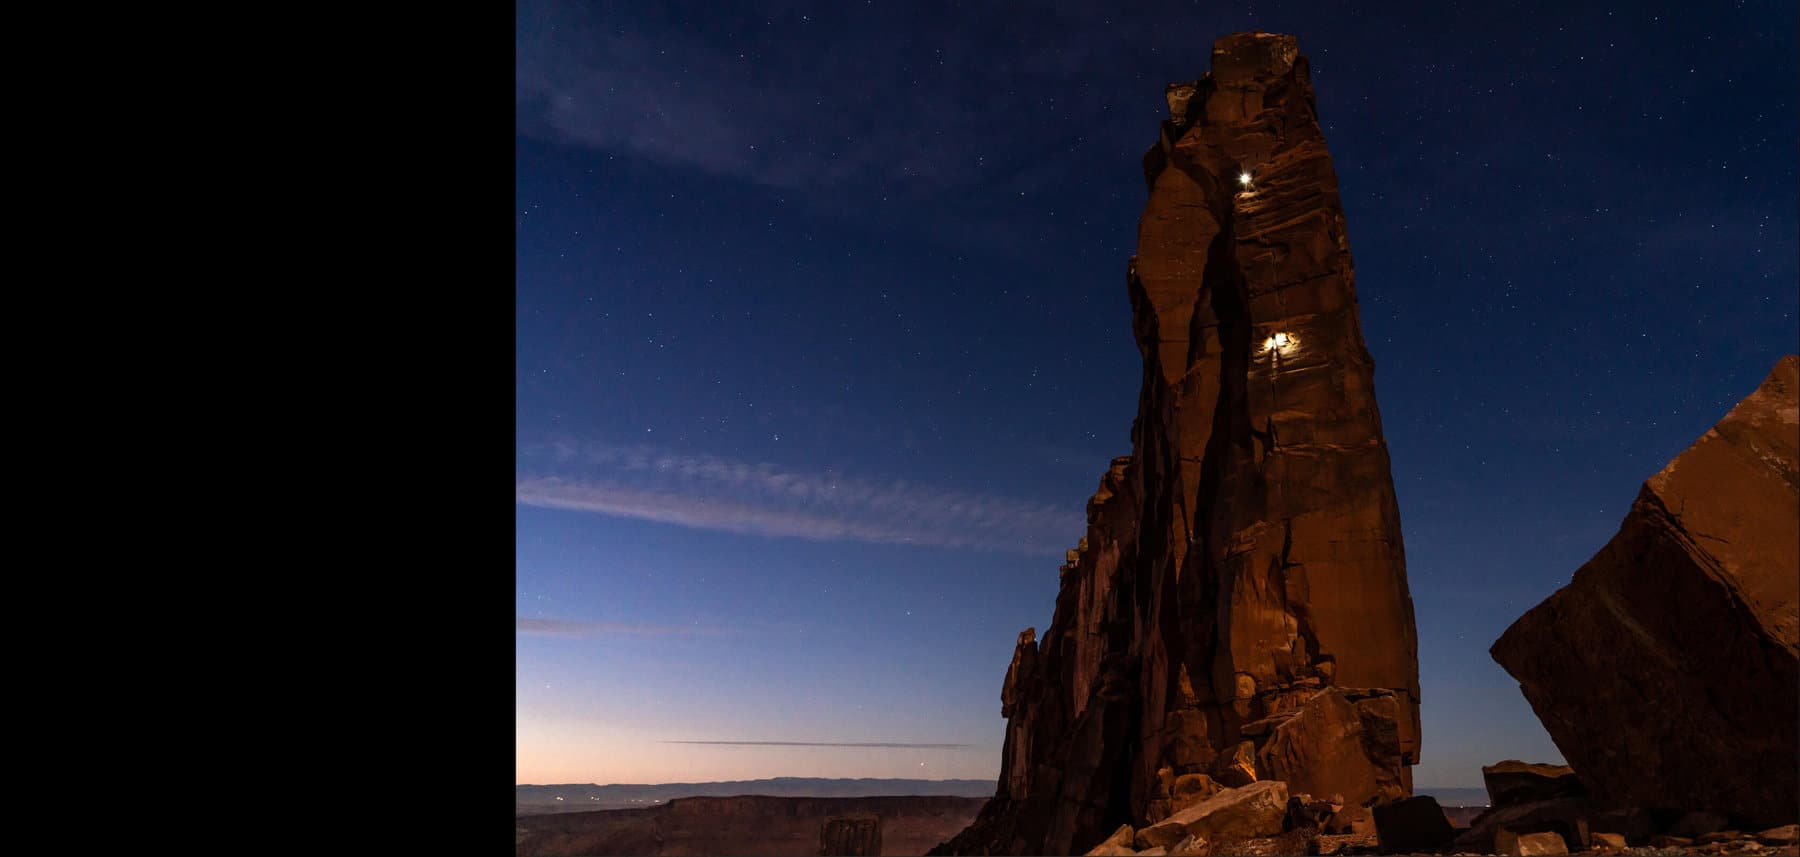 Below these two images is an image of a large rock tower lit by two lights at night.